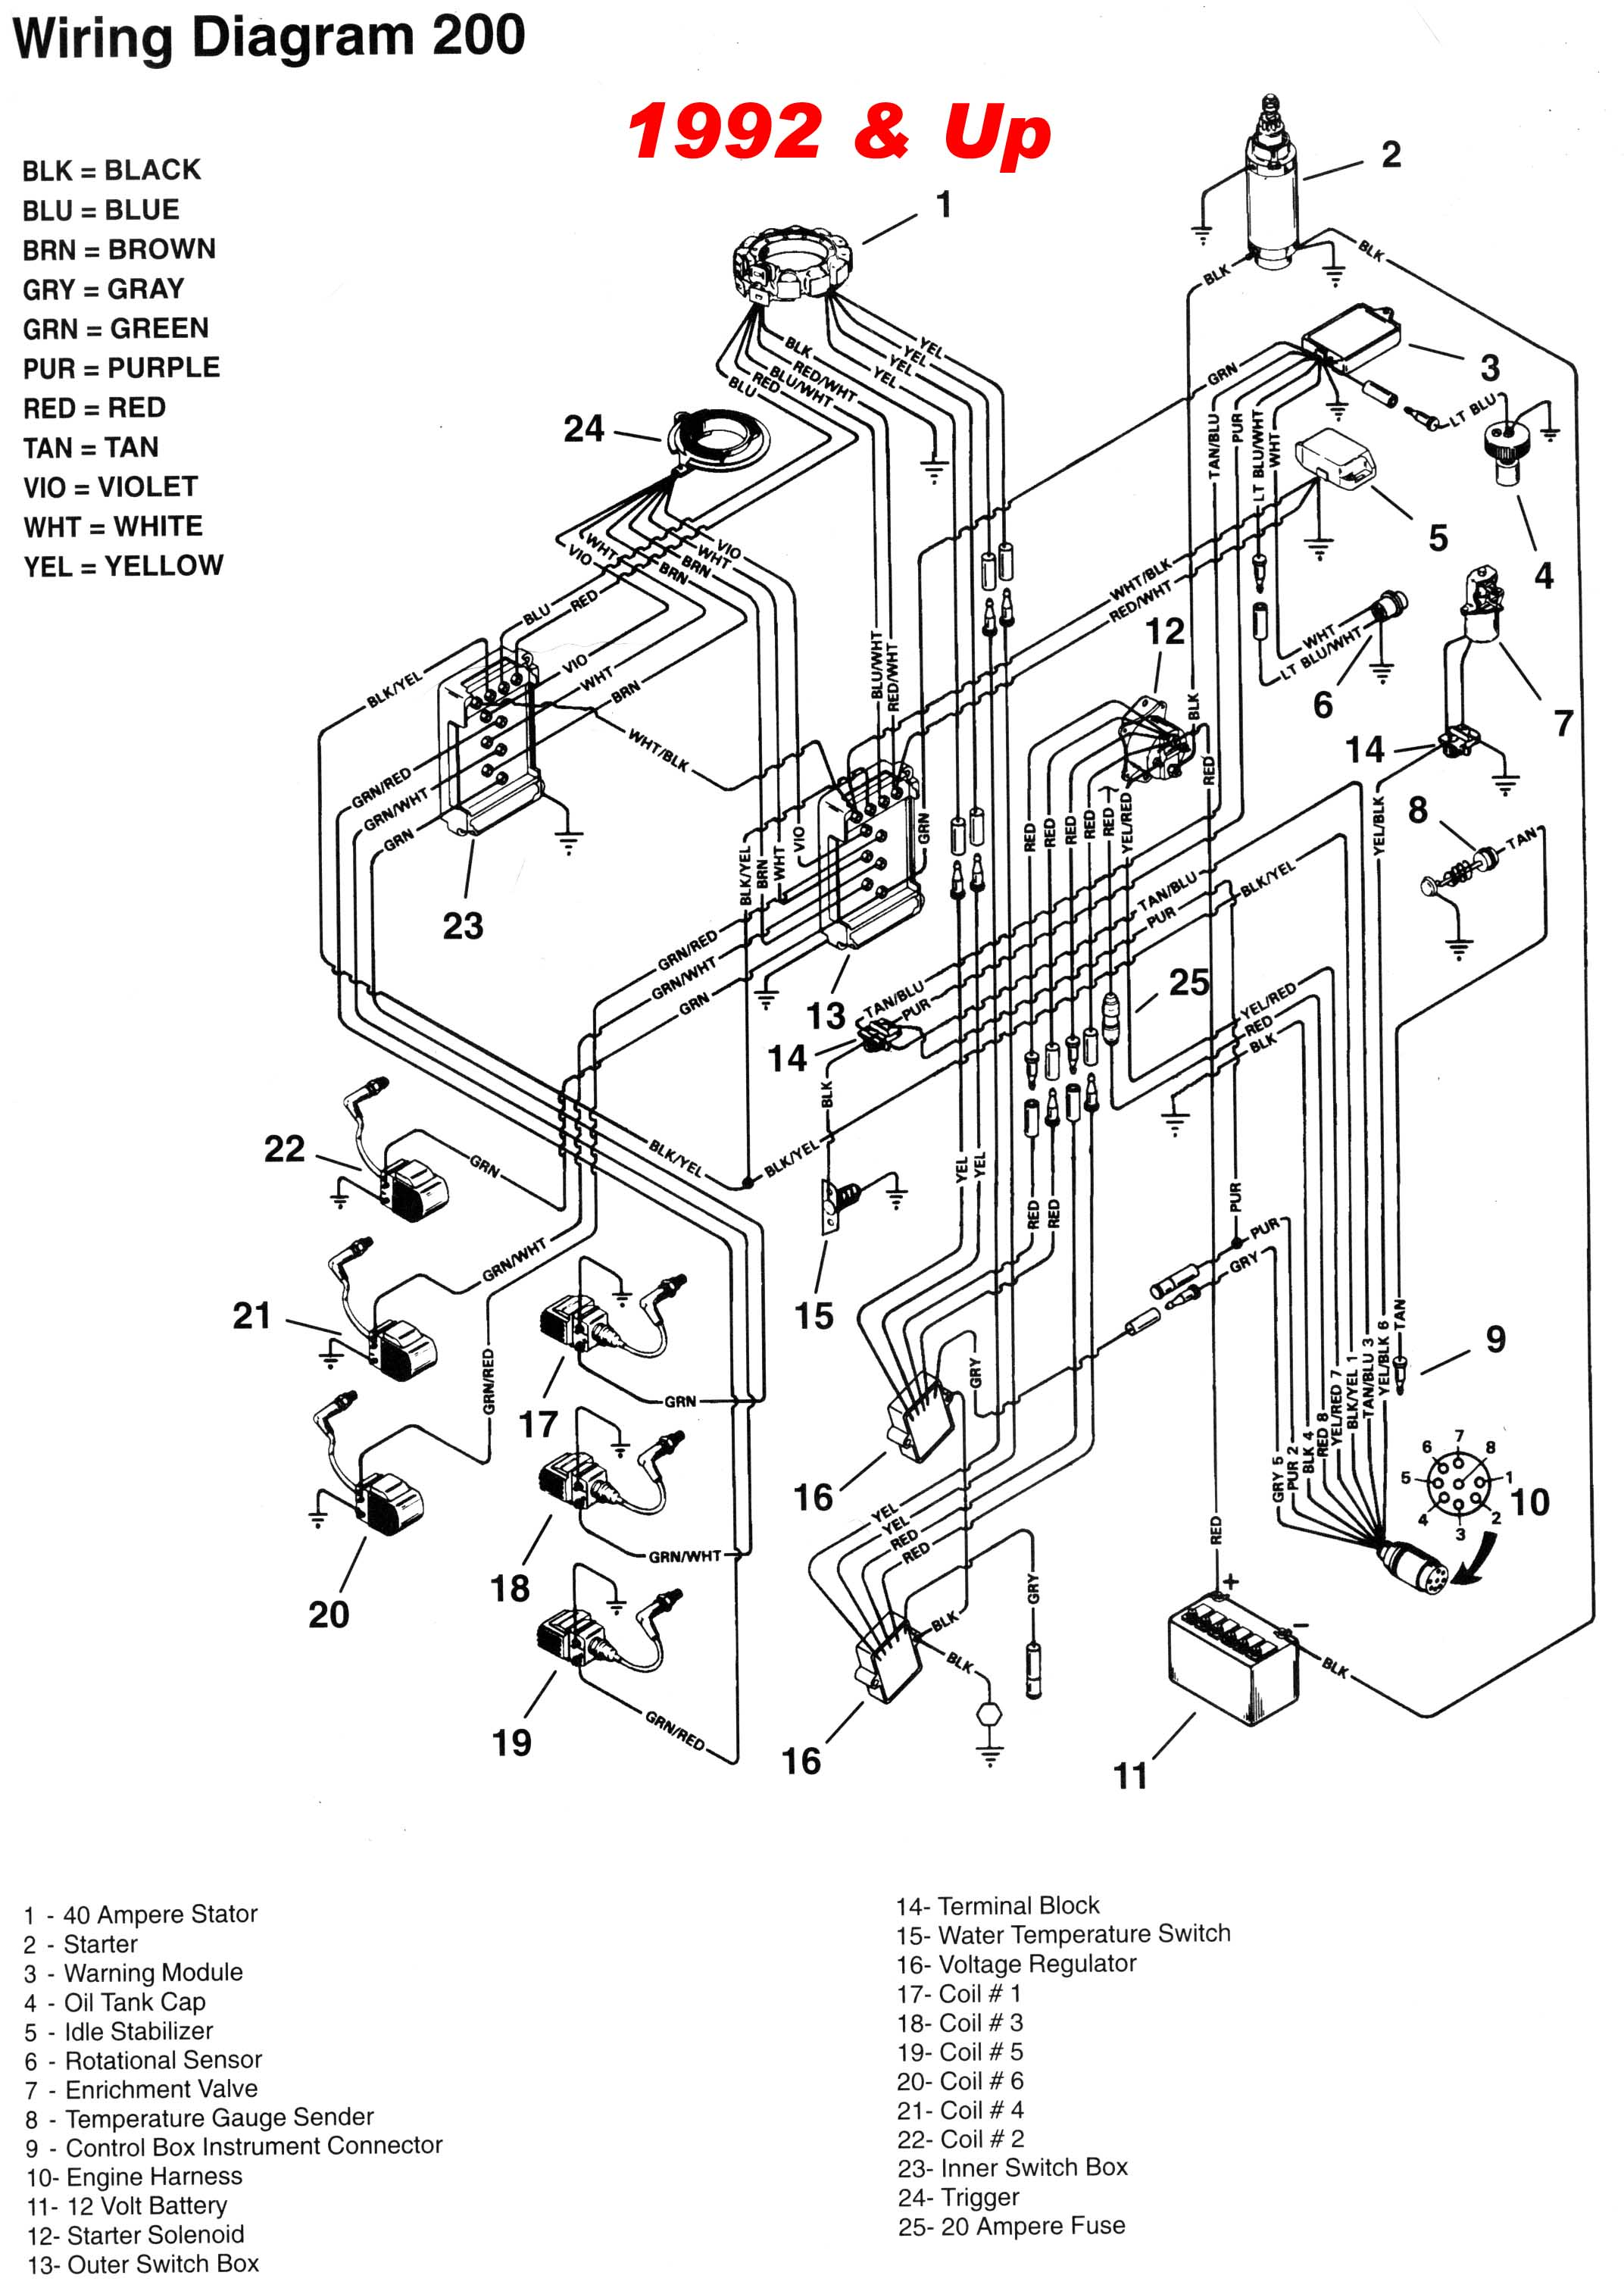 Wiring Diagram For Mercury 150 Xr2 Electrical 1987 Dodge W150 Schematic Black Max Schematics Rh Ksefanzone Com 95